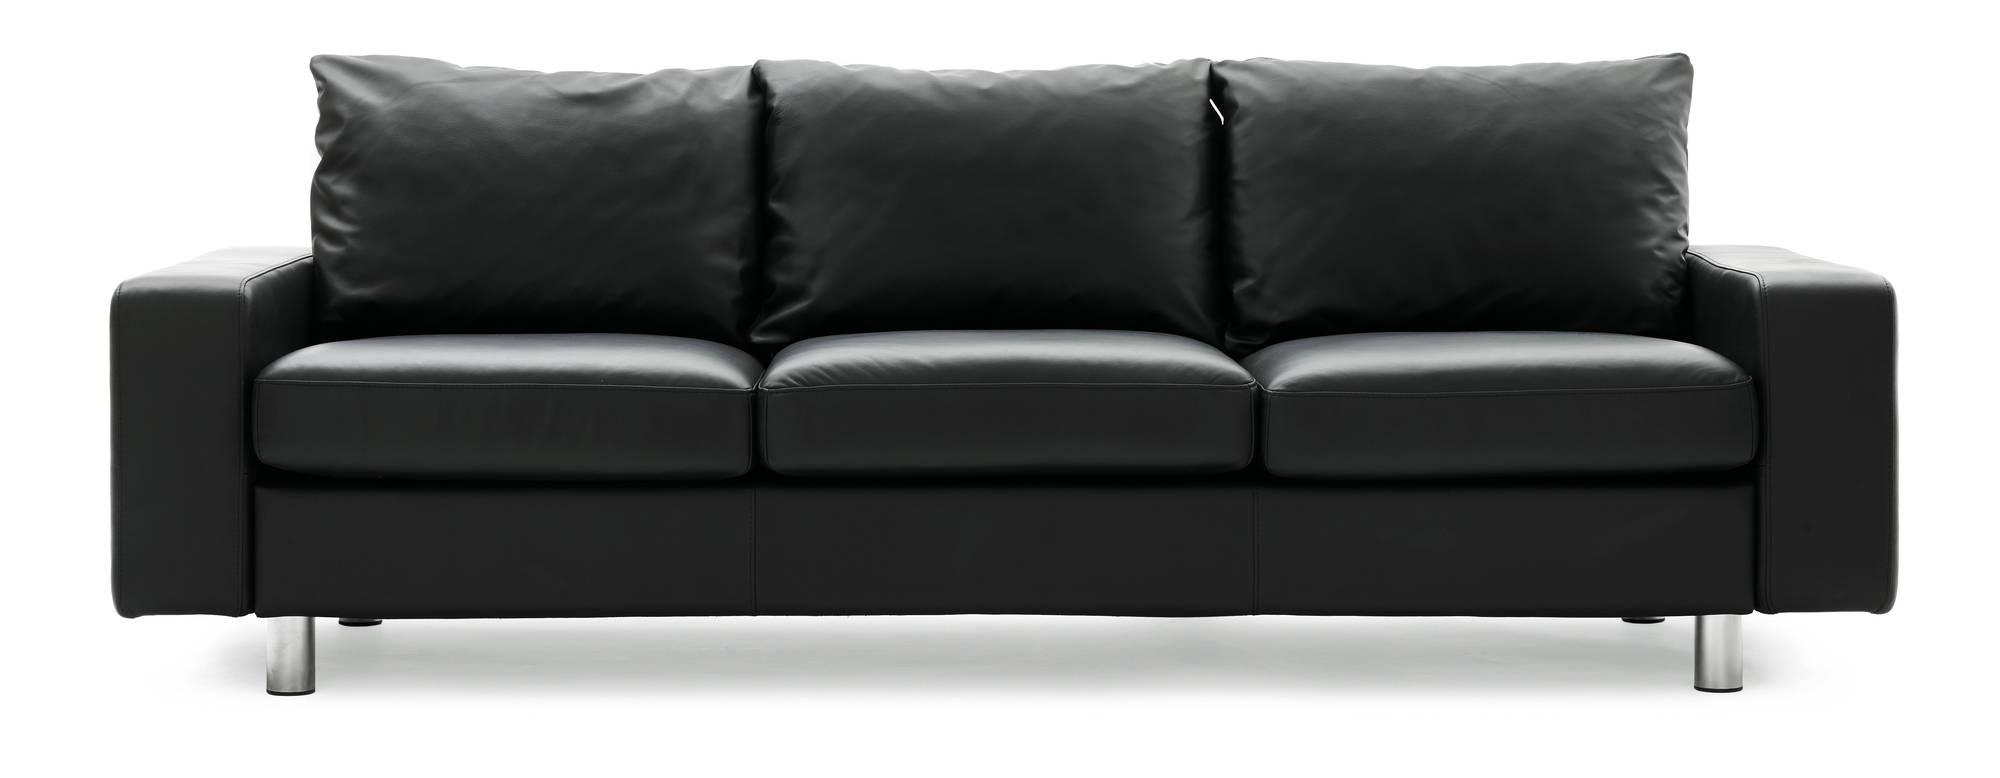 stressless sofas special low prices rh unwind com ekornes furniture prices ekornes furniture prices